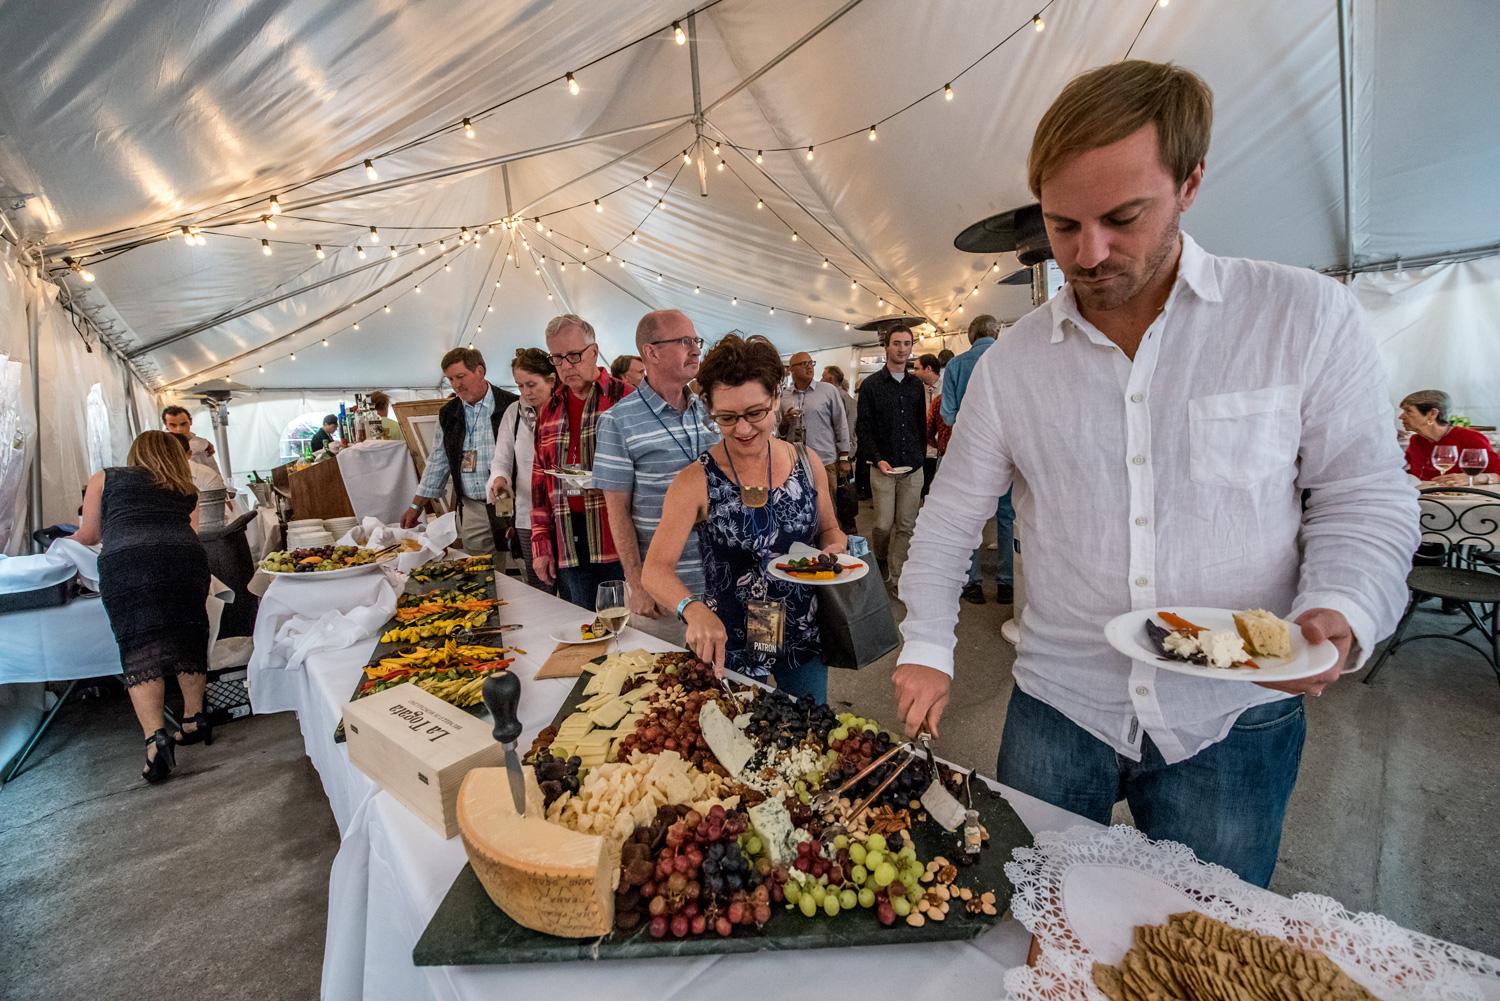 Patrons can enjoy a luxurious opening reception to kick off the festival.